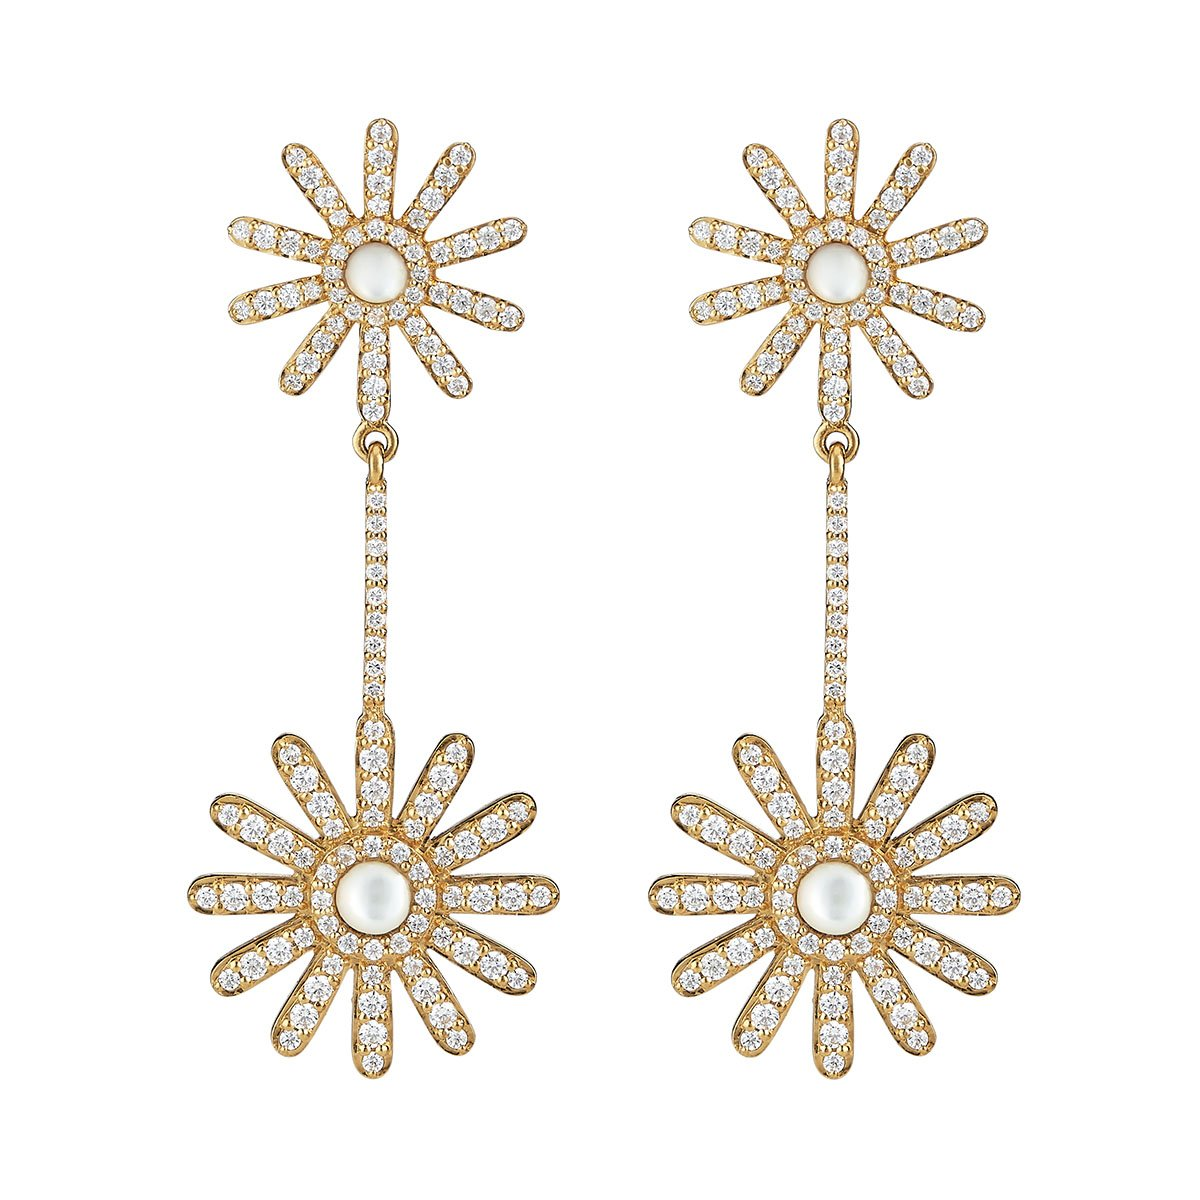 Daisy Pave earrings , Asha $295  Local brand Asha wins my prize for the most covetable bling. I'll be making a (glamorous) statement with these pavé earrings.